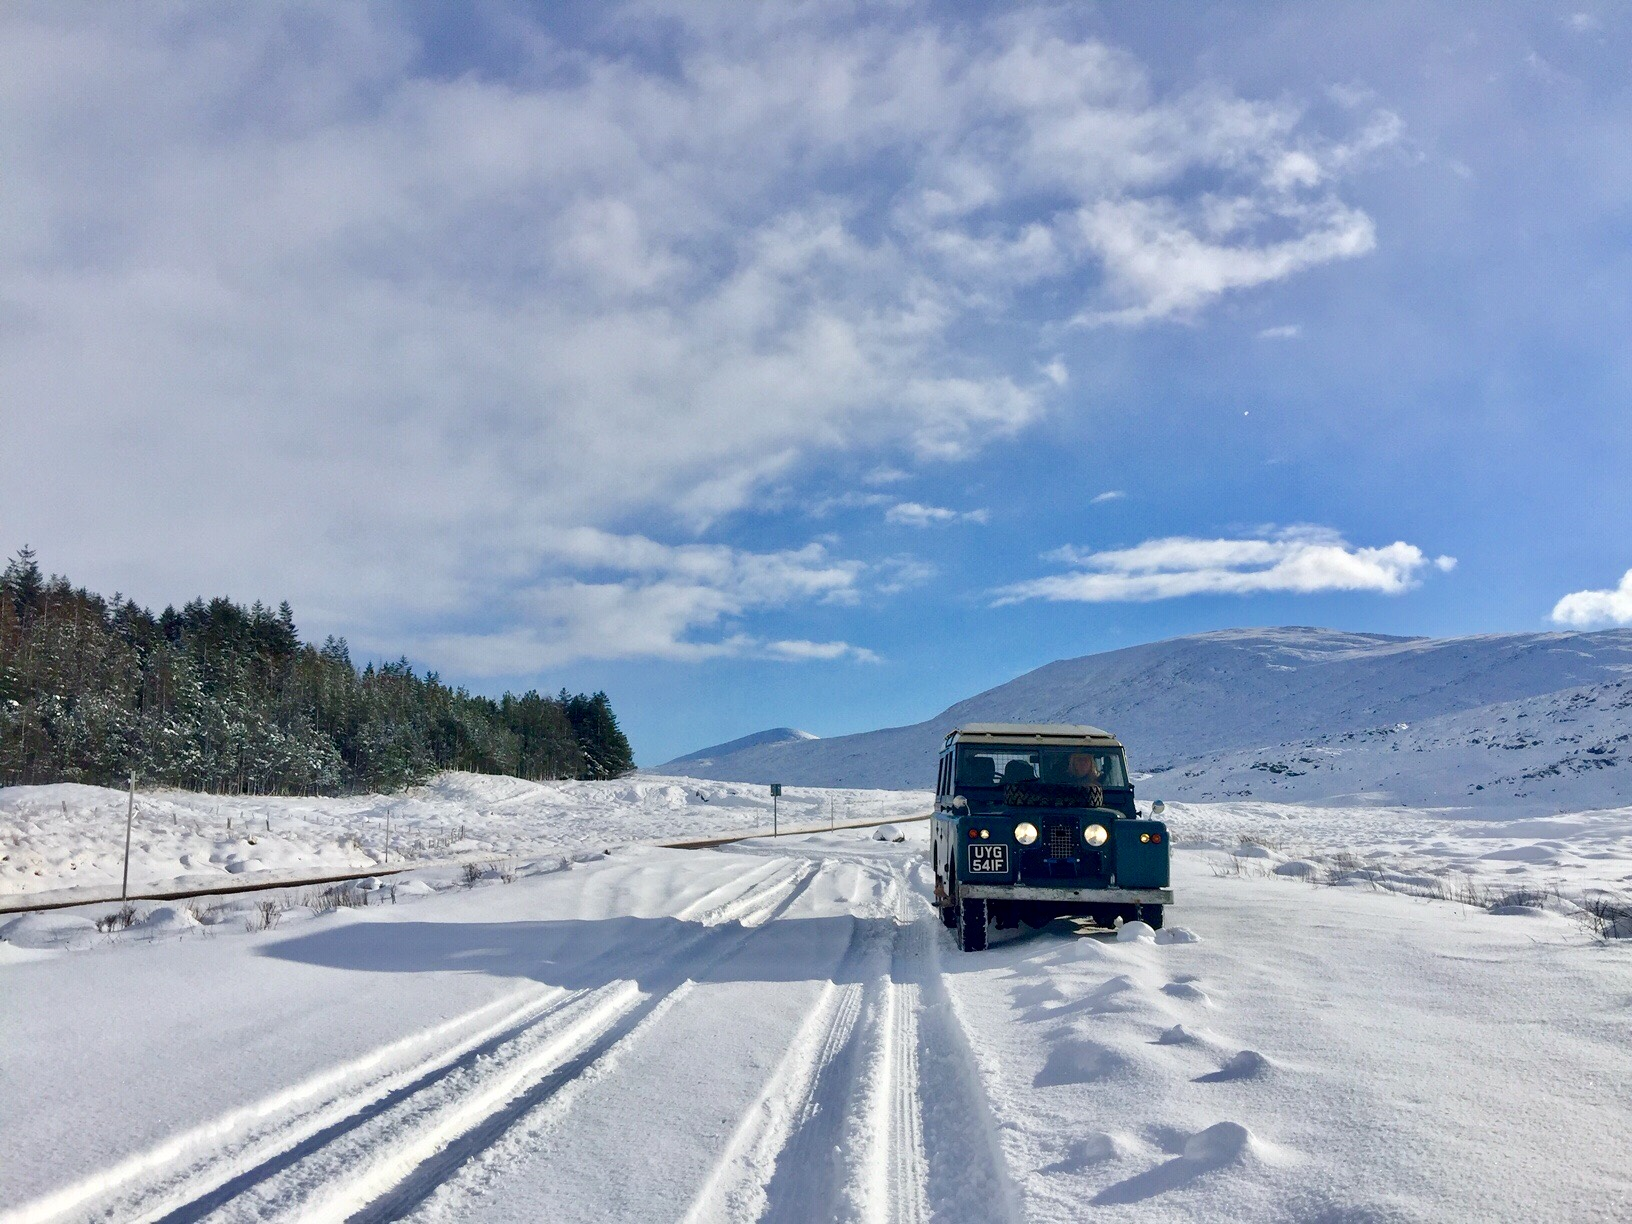 Snow in January, Just a routine run for our Land Rover Series 2a (1968)